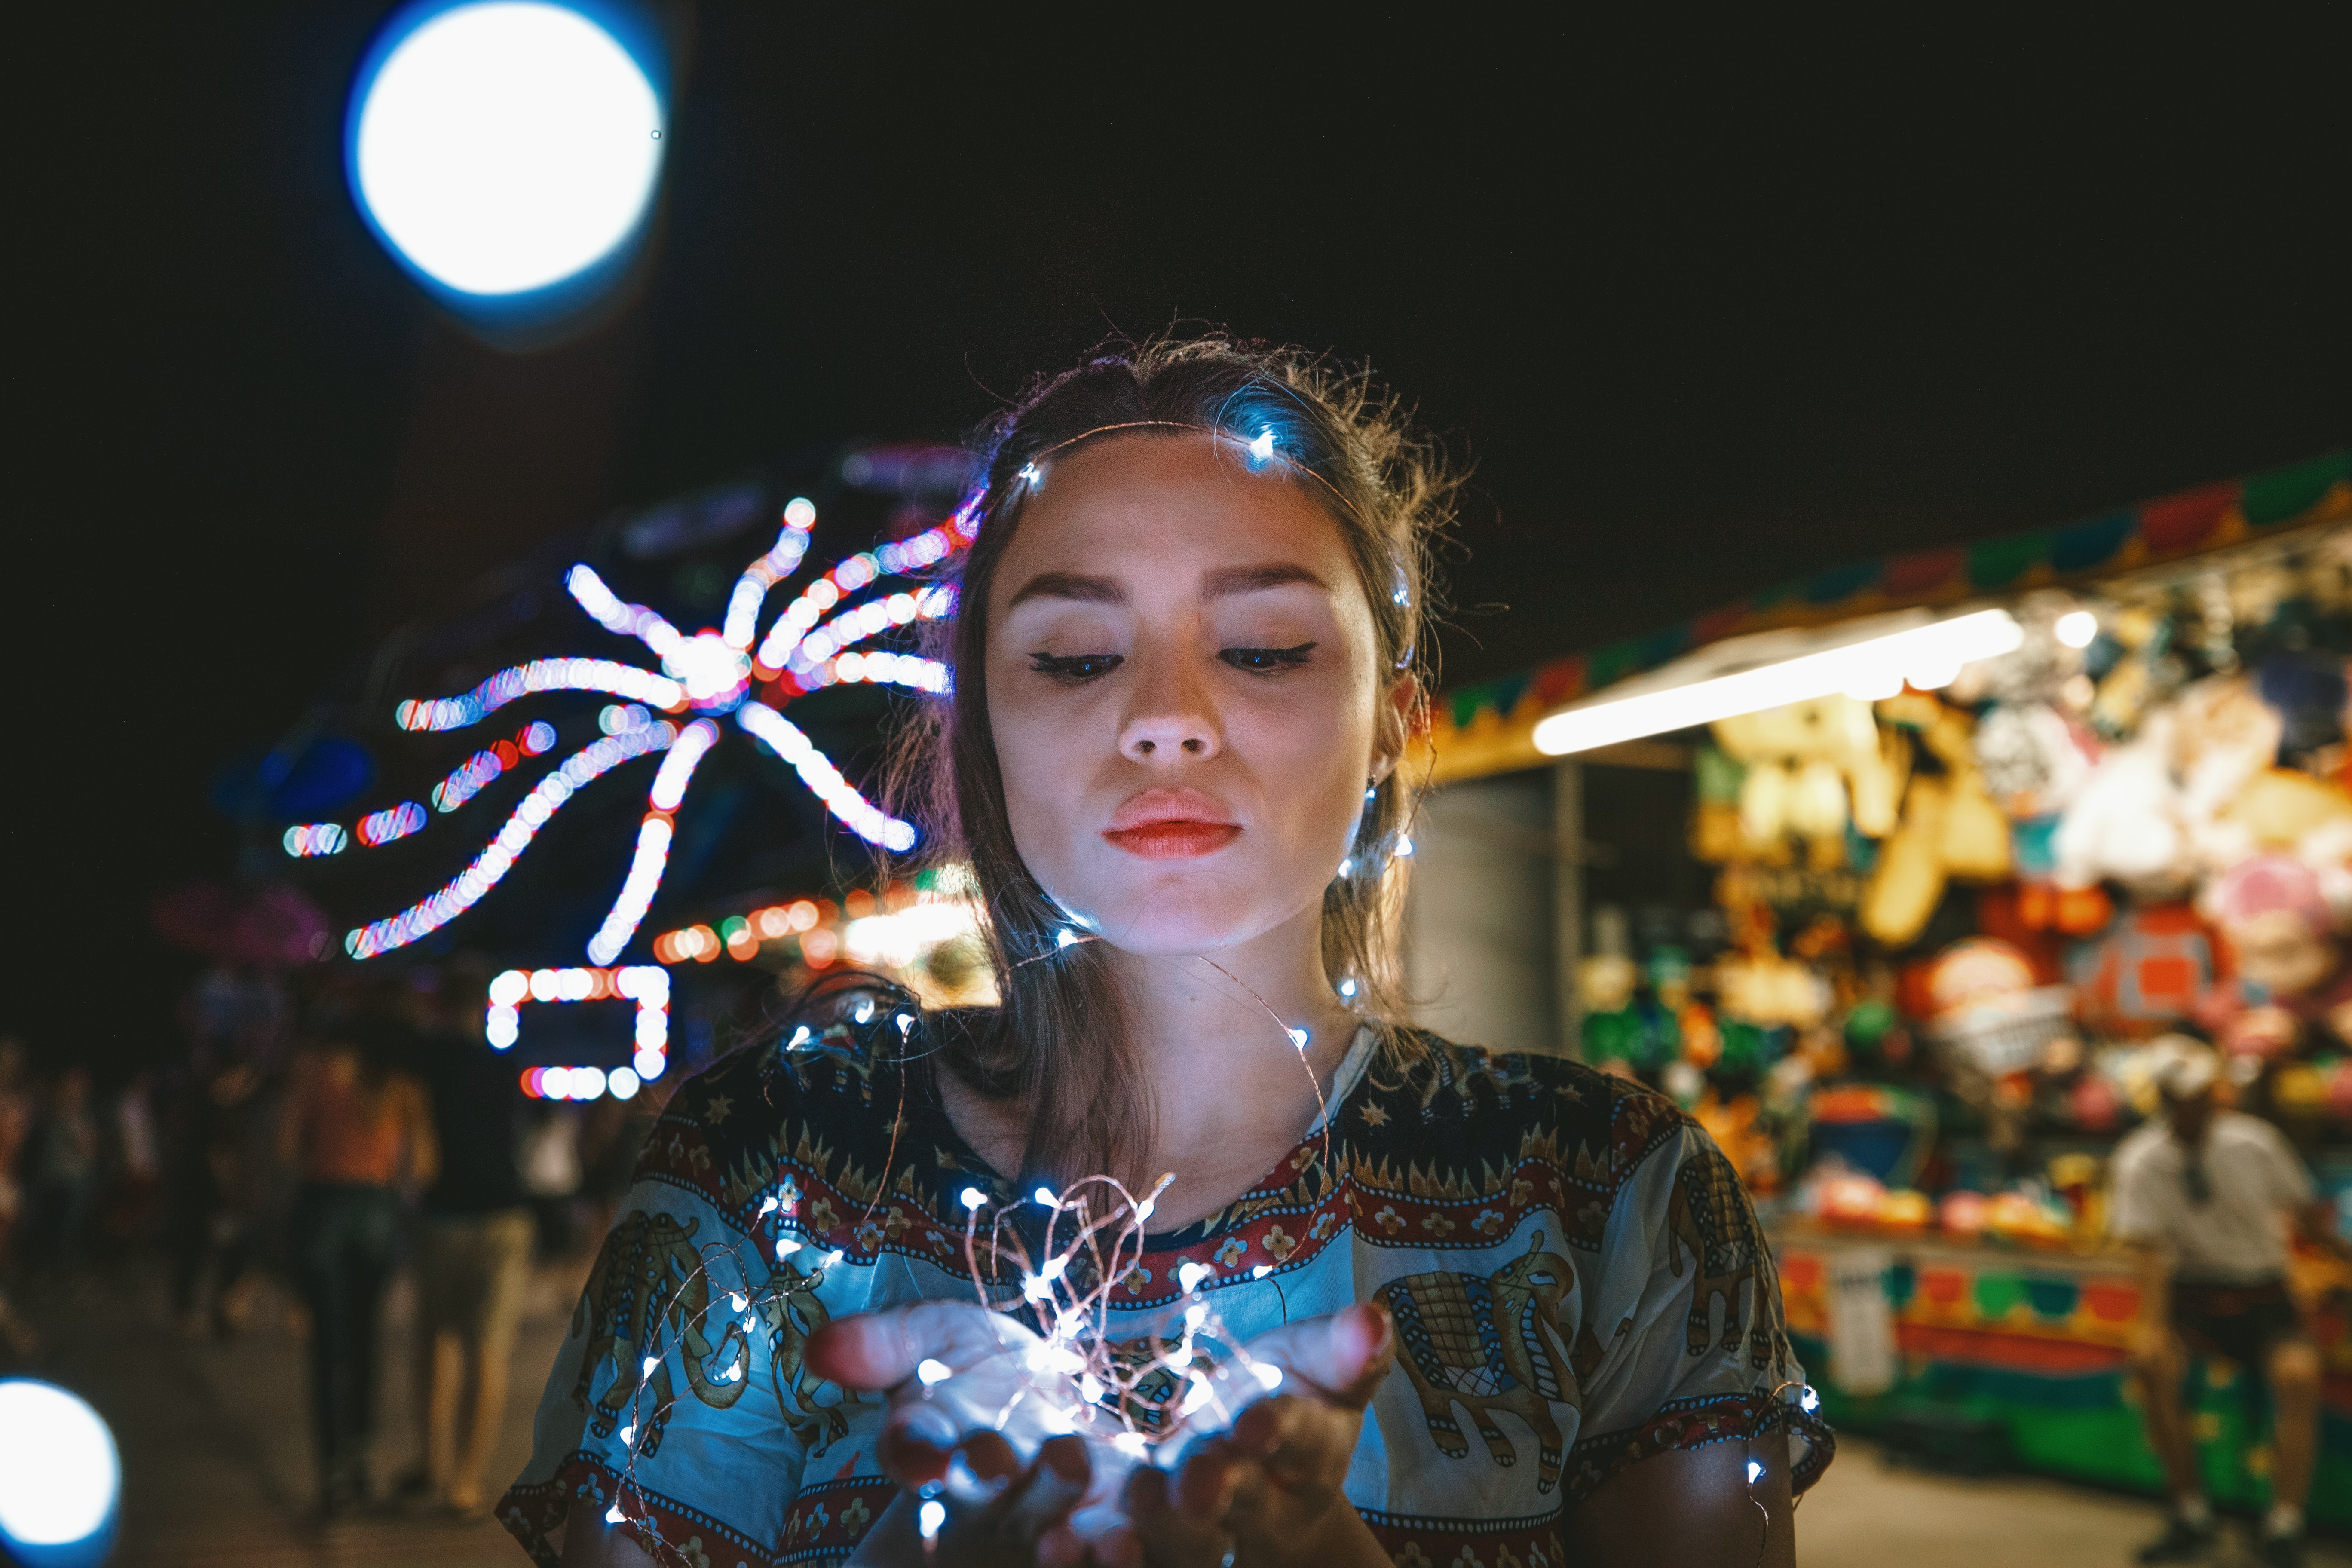 woman wearing multicolored shirt holding lighted string lights